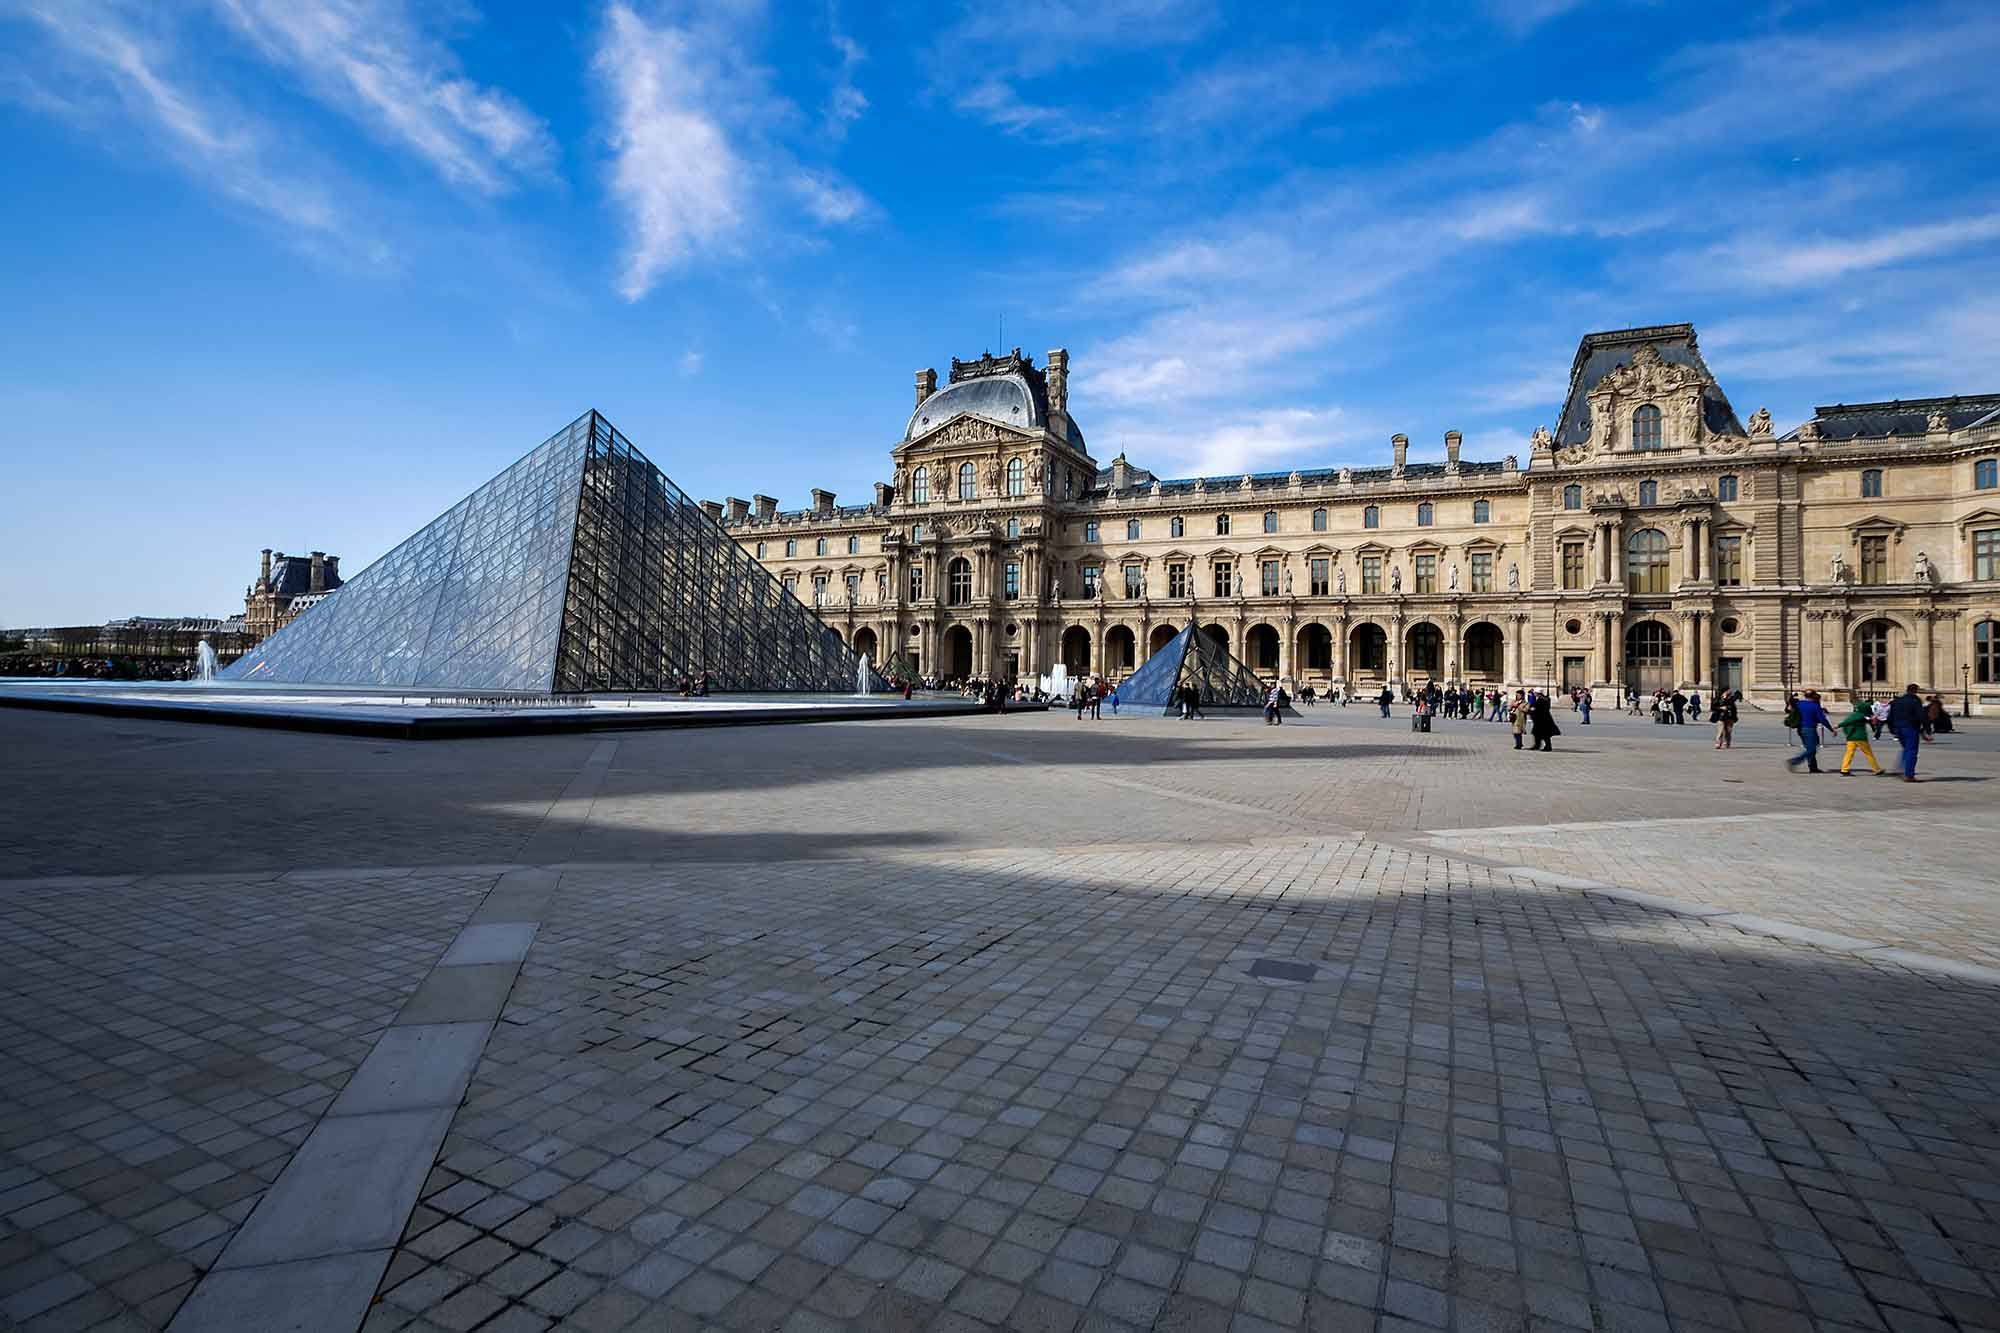 The Louvre Museum in Paris, France. © Ulli Maier & Nisa Maier